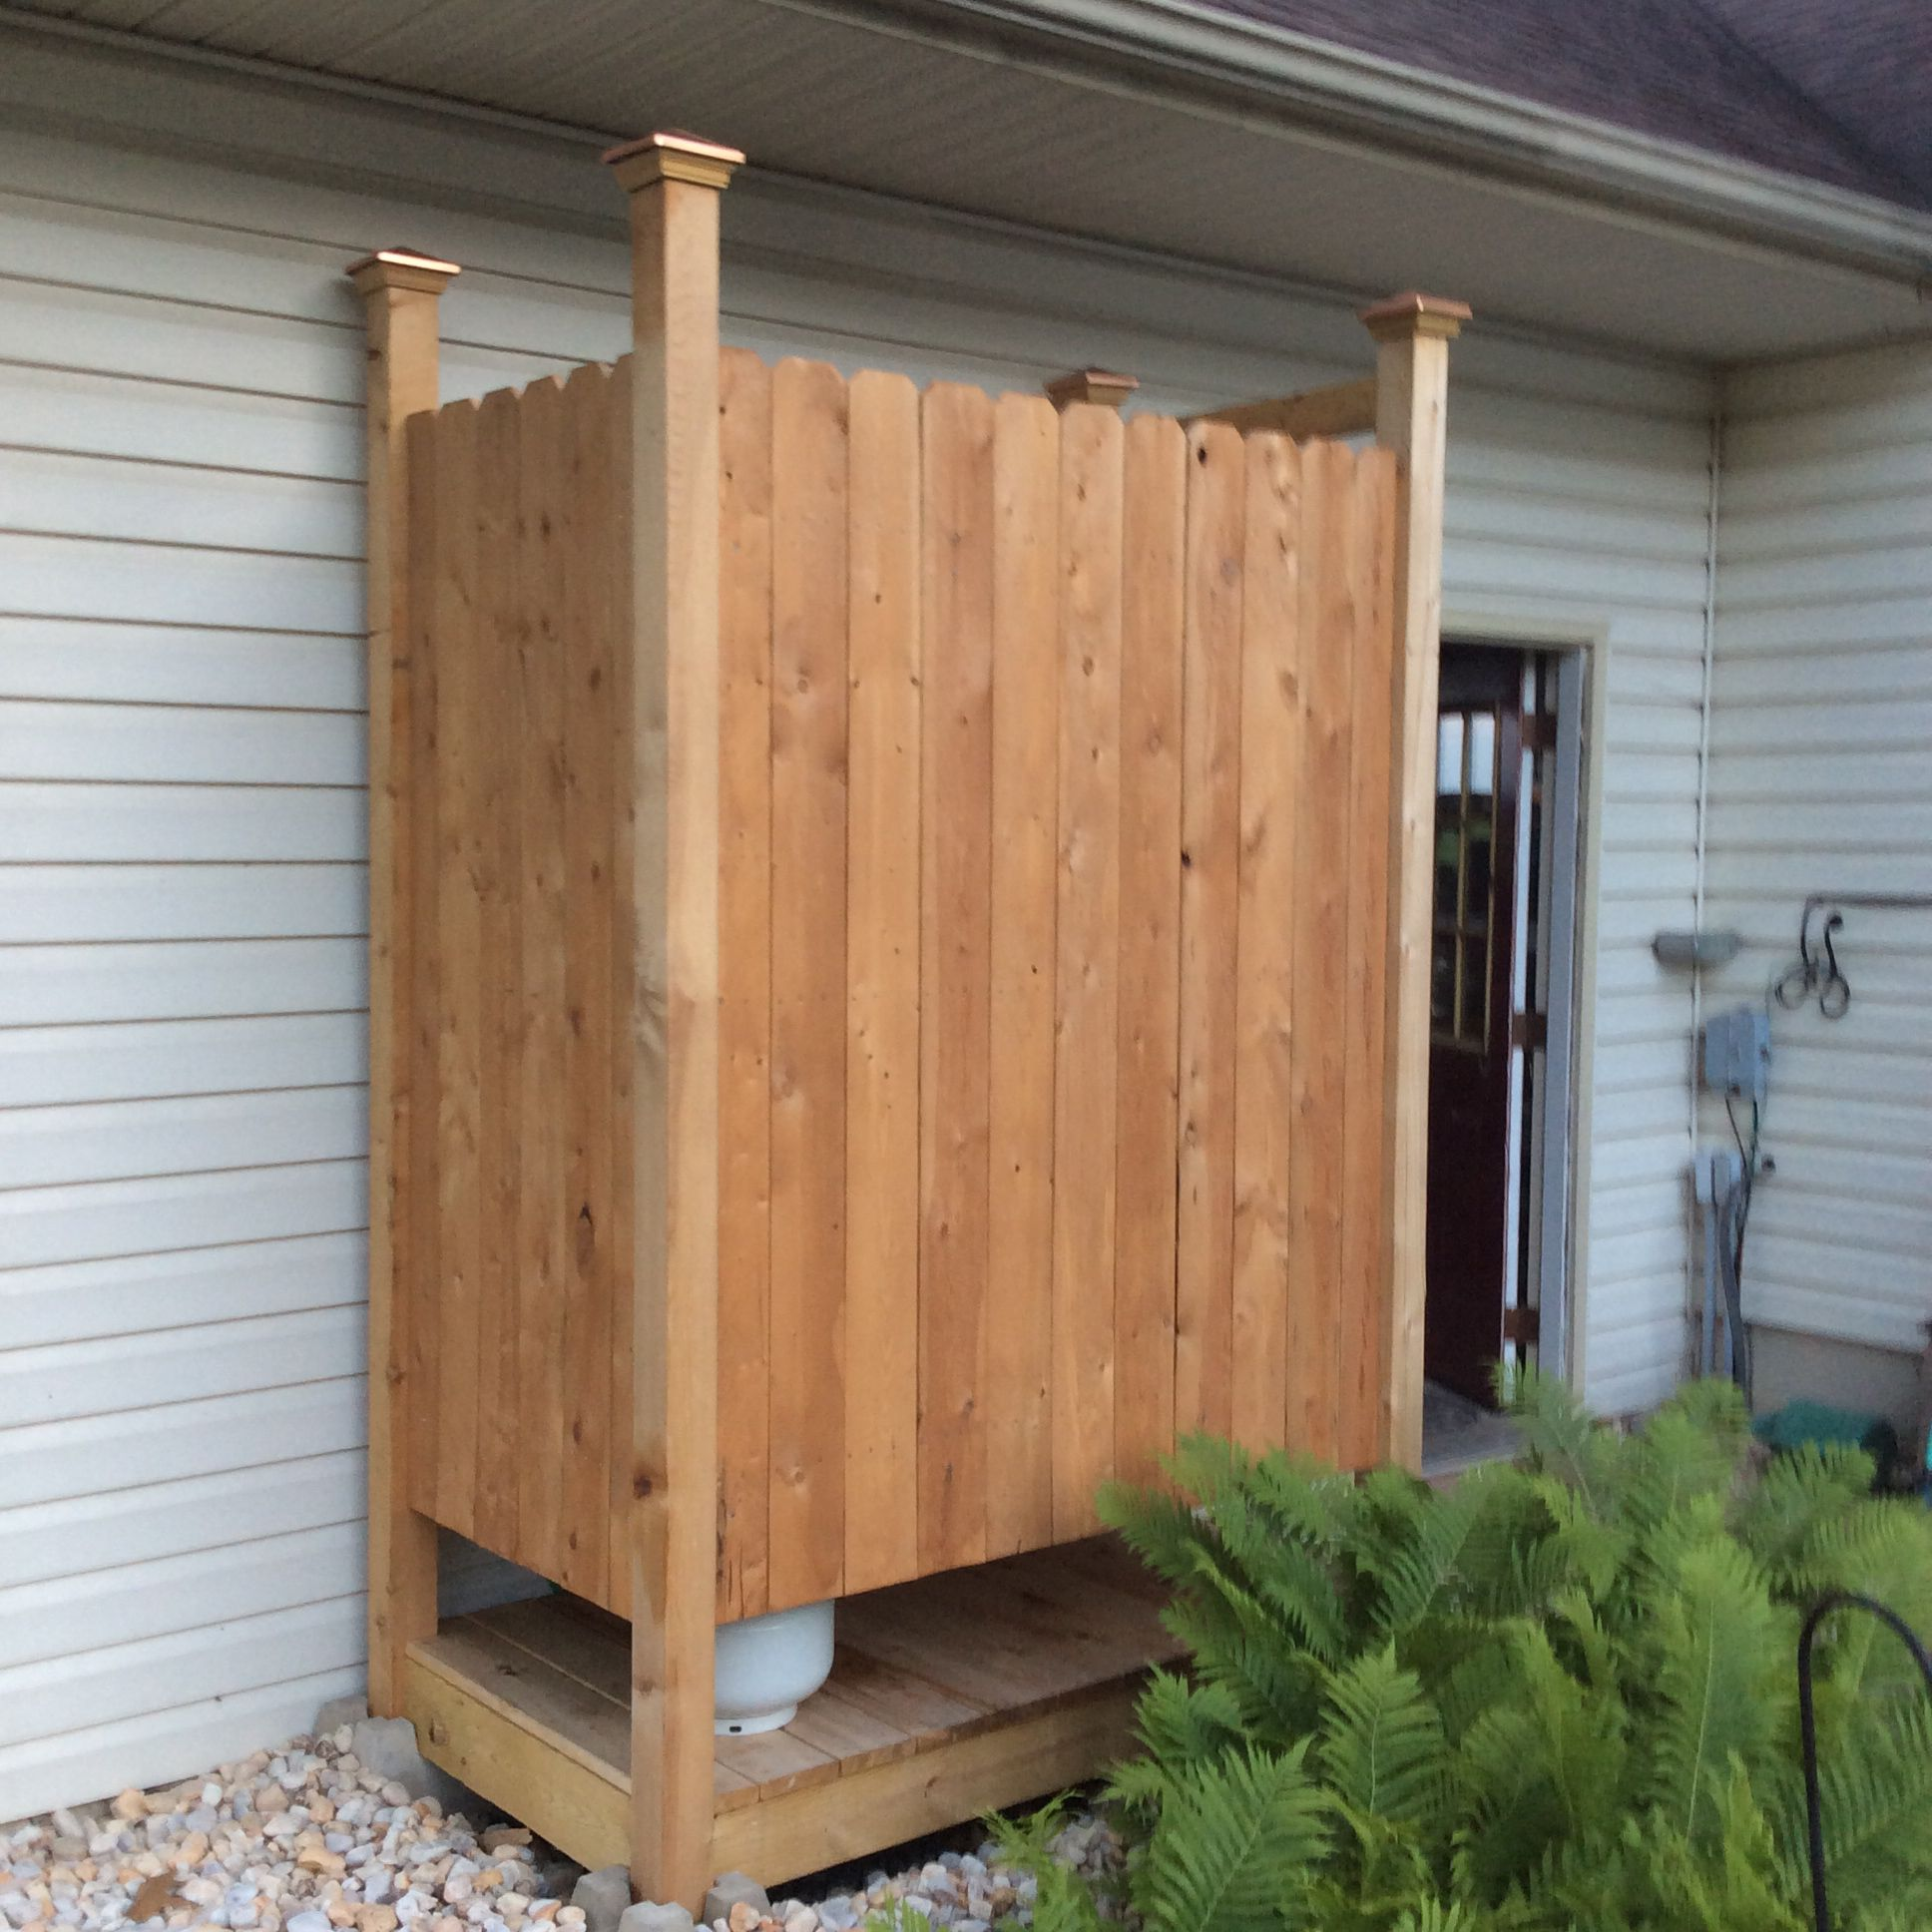 Outdoor shower hubby made from cedar fencing and a camping shower kit hooks up